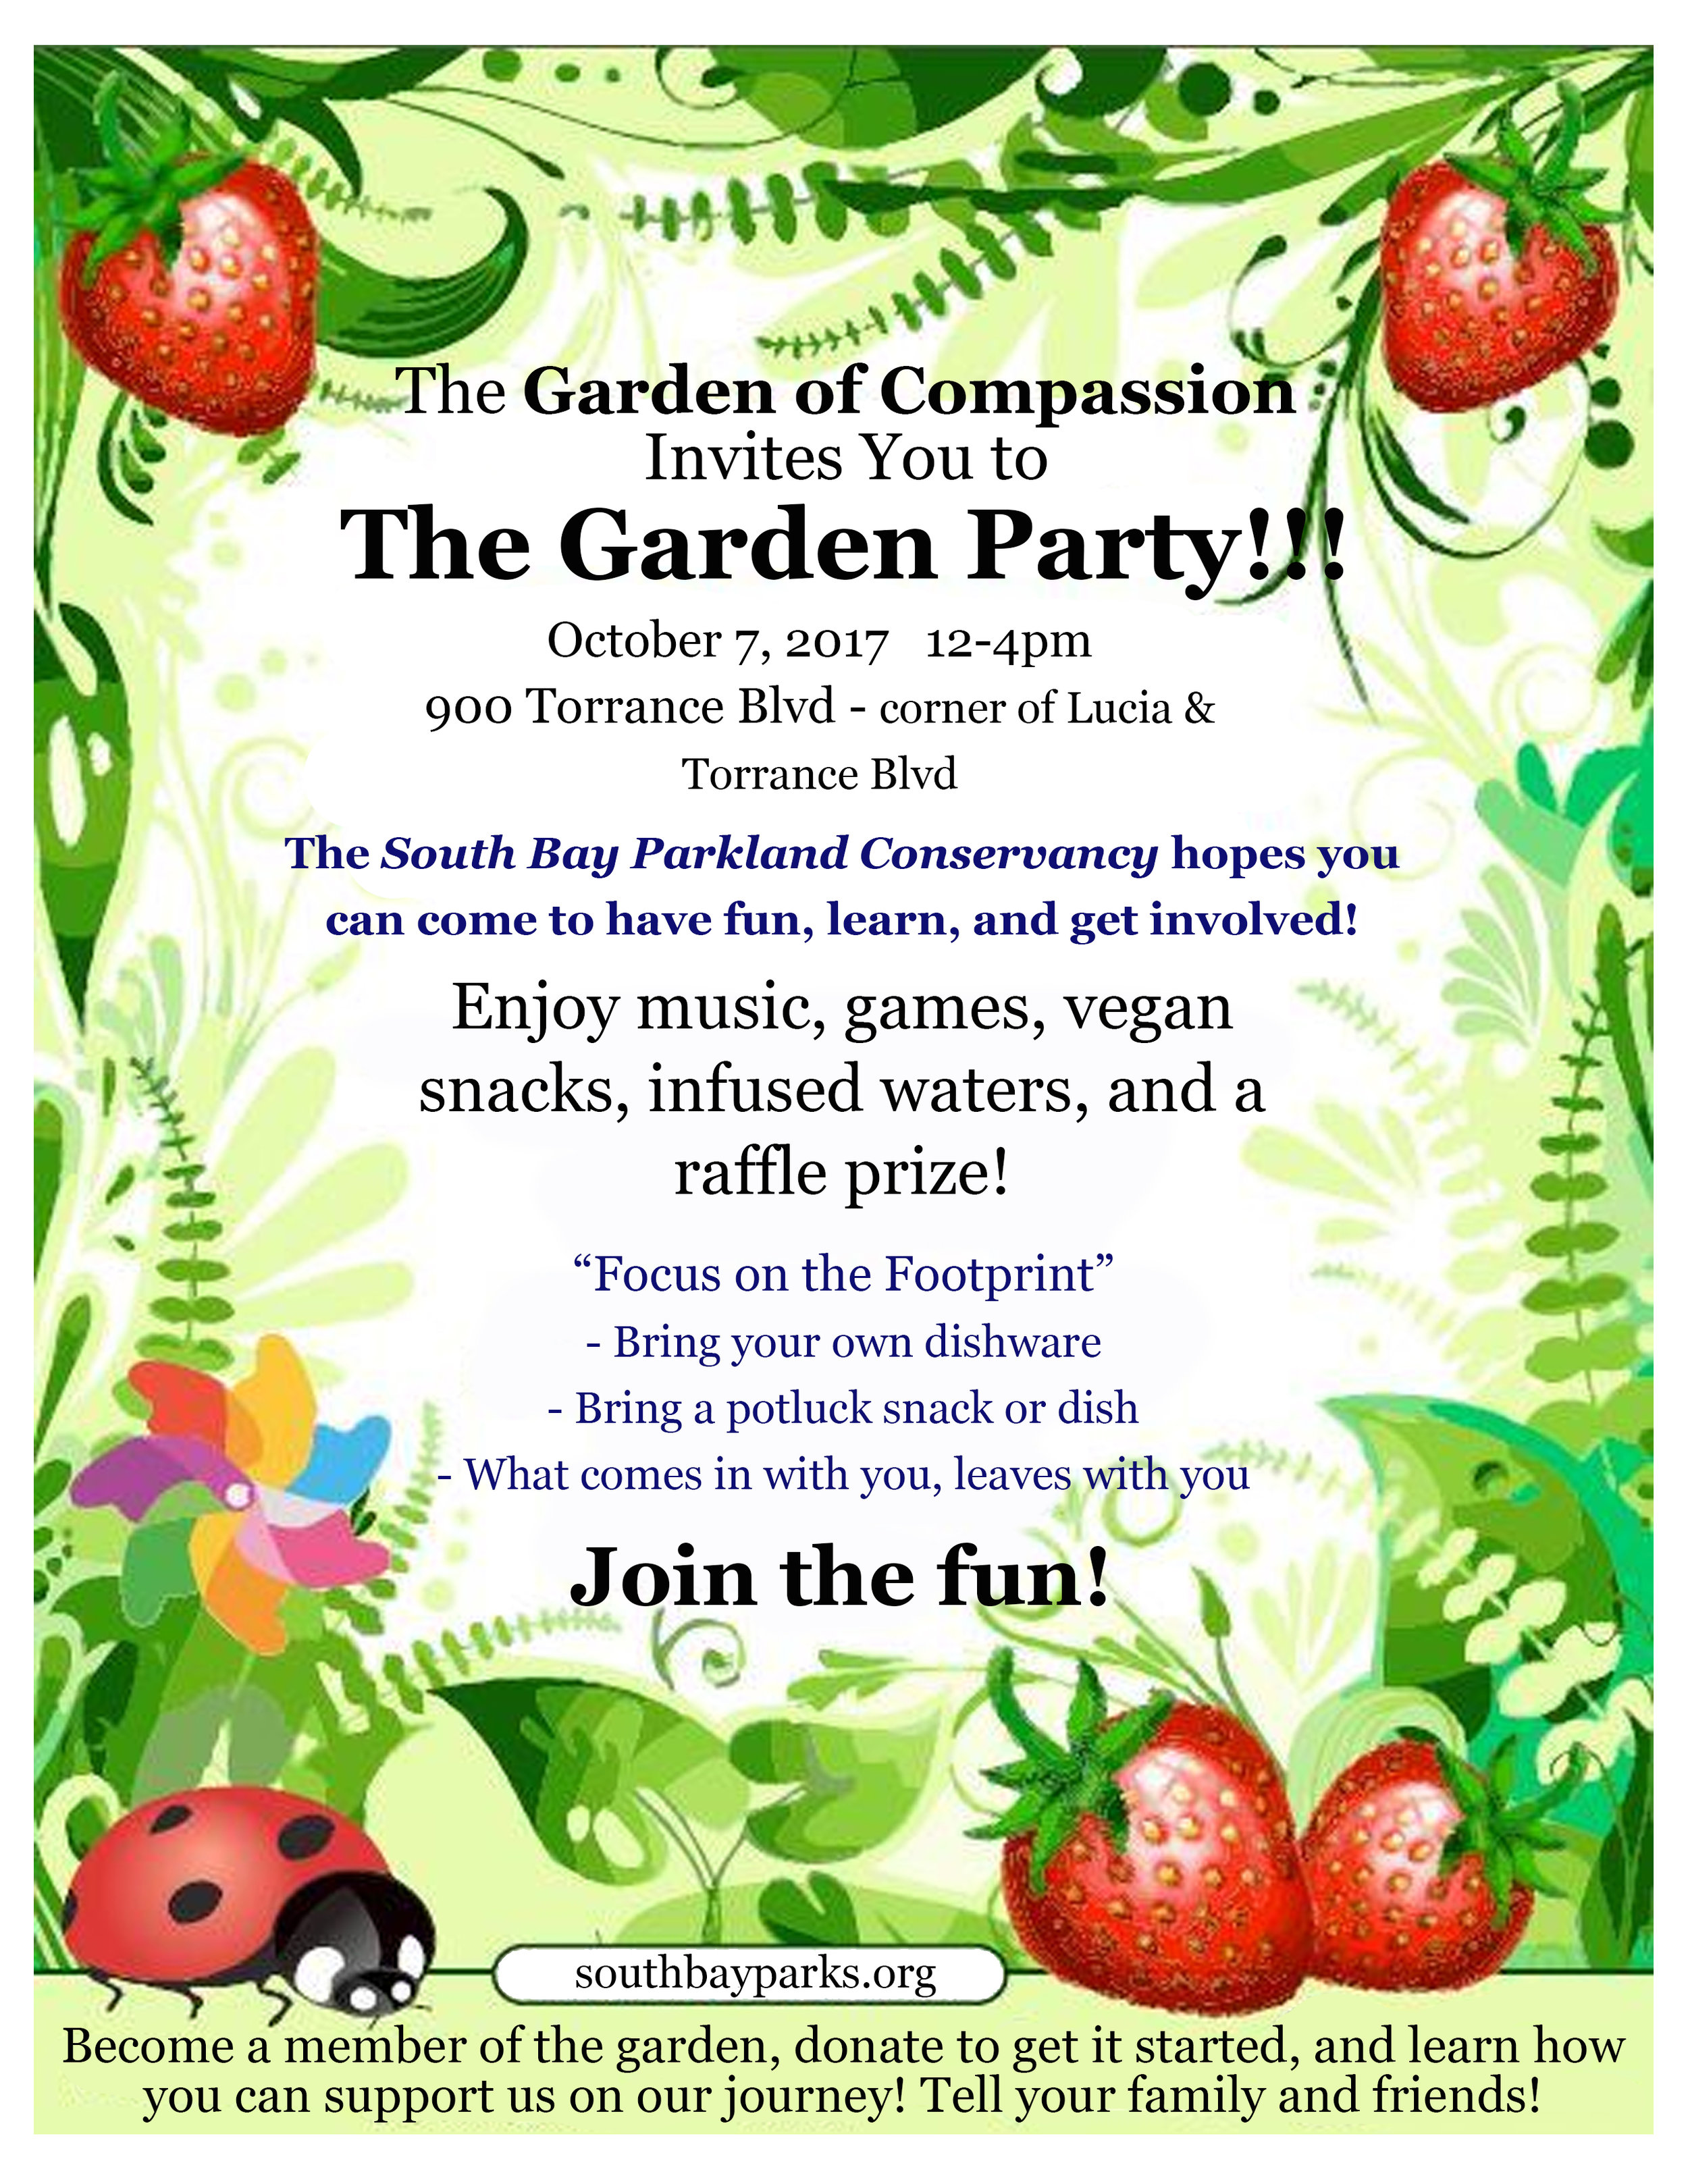 The Garden Party!!! Invite.jpg